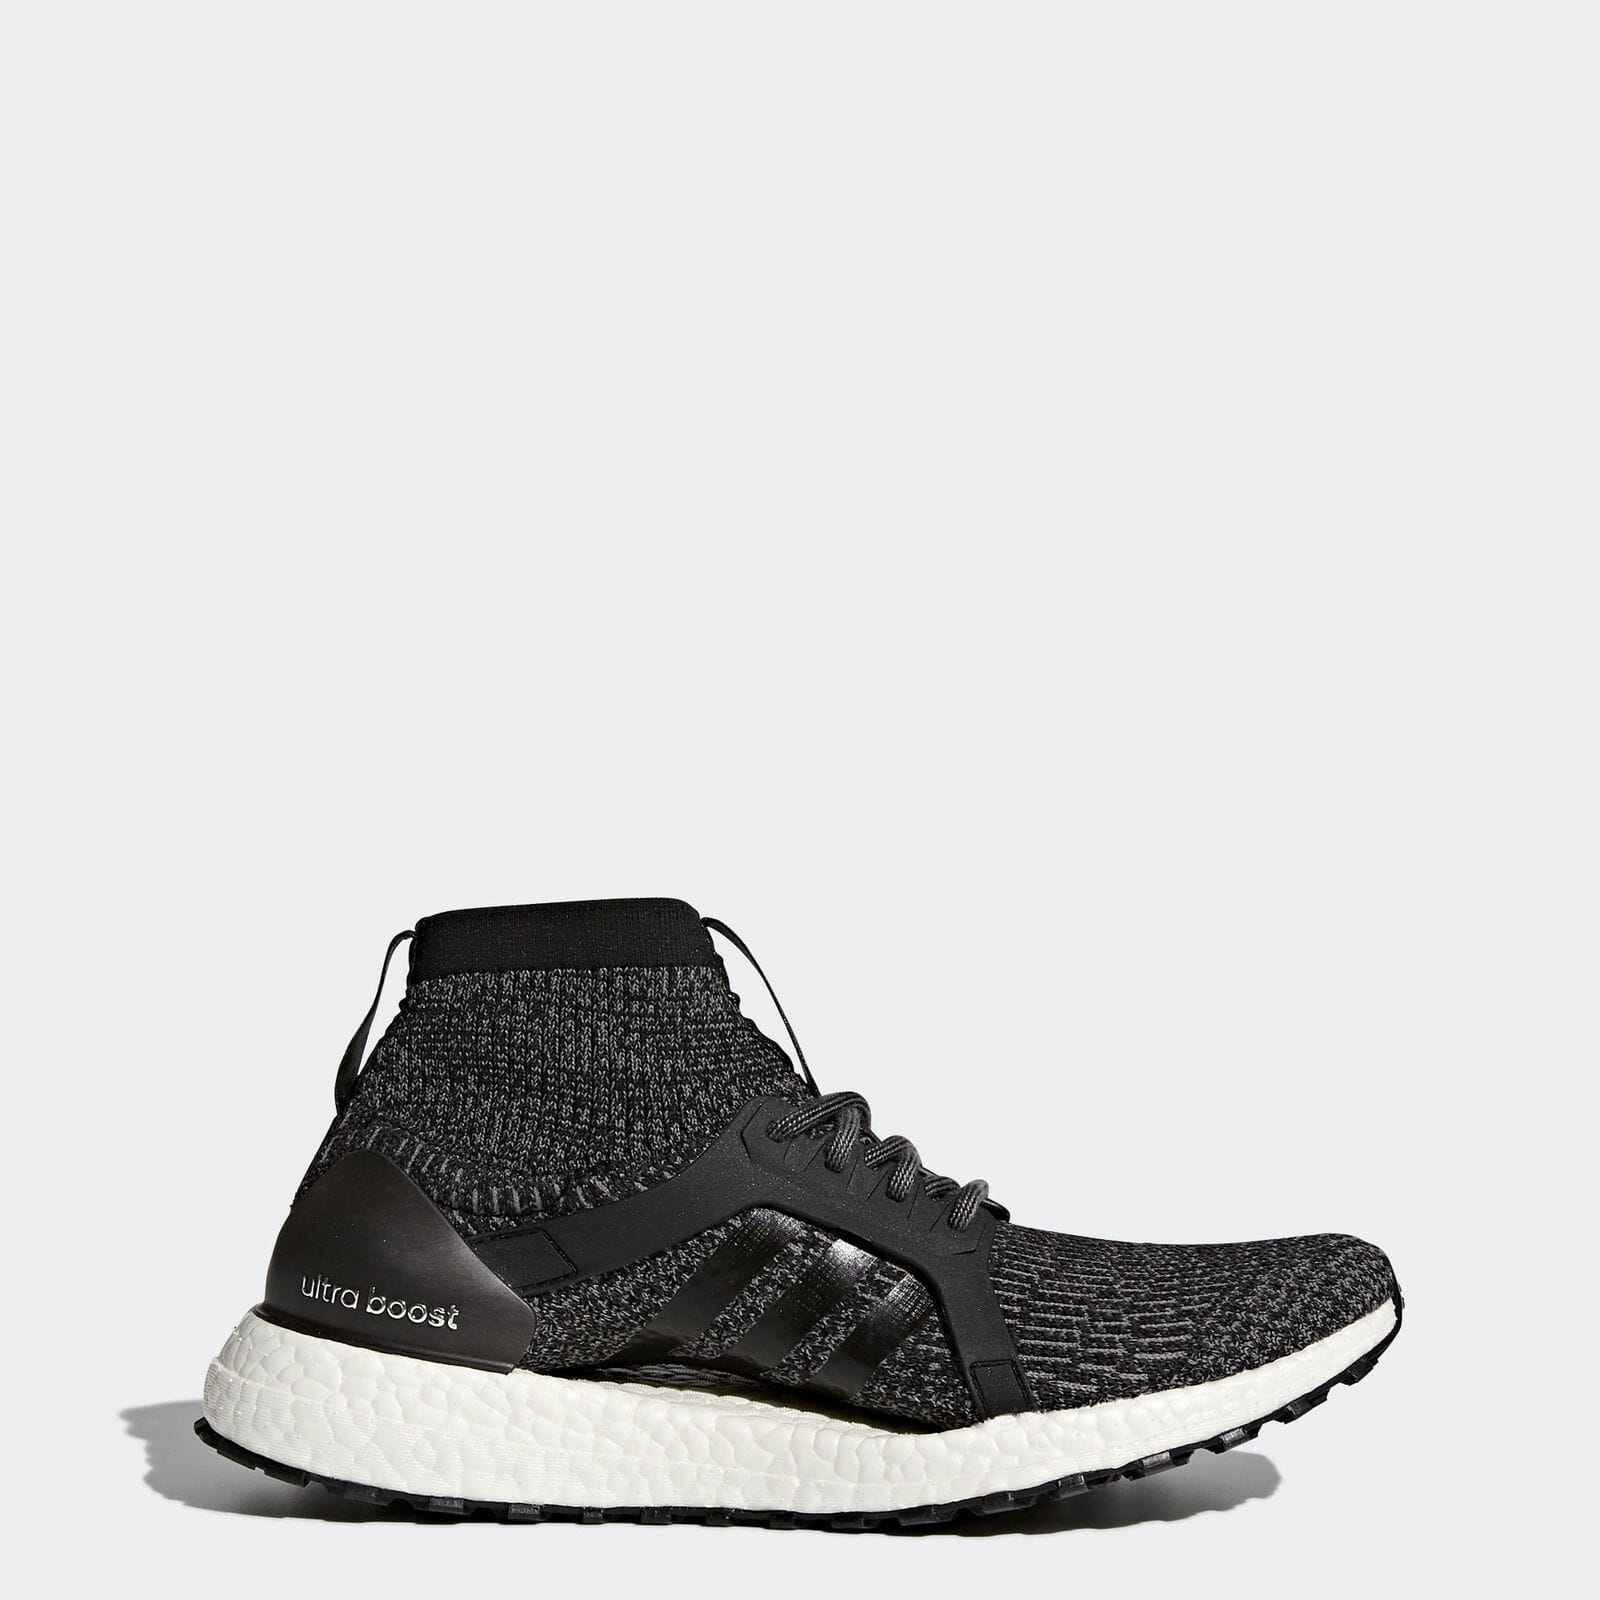 adidas UltraBOOST X All Terrain Women's Running Shoes $85 + Free Shipping